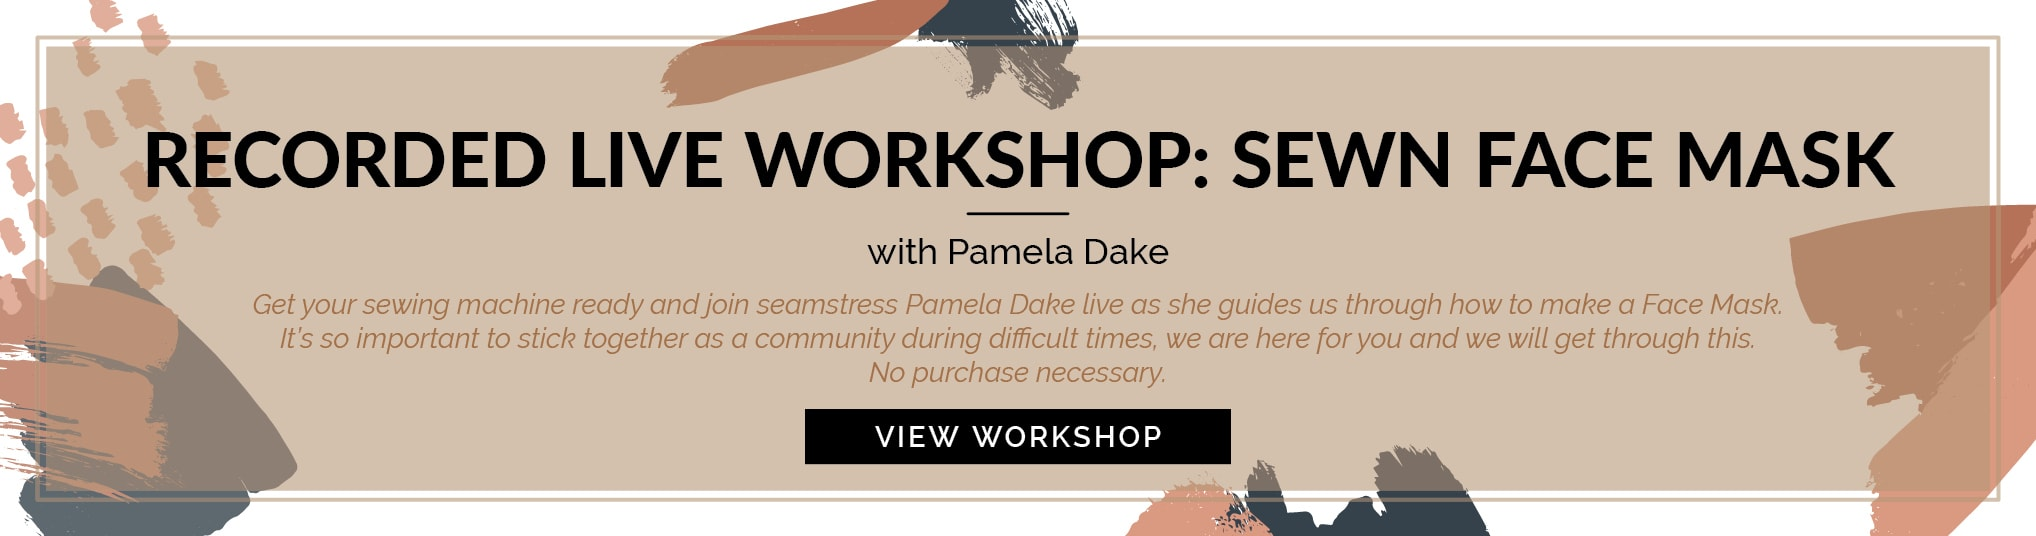 Button to Sewn Face Mask Live Workshop with Pamela Dake